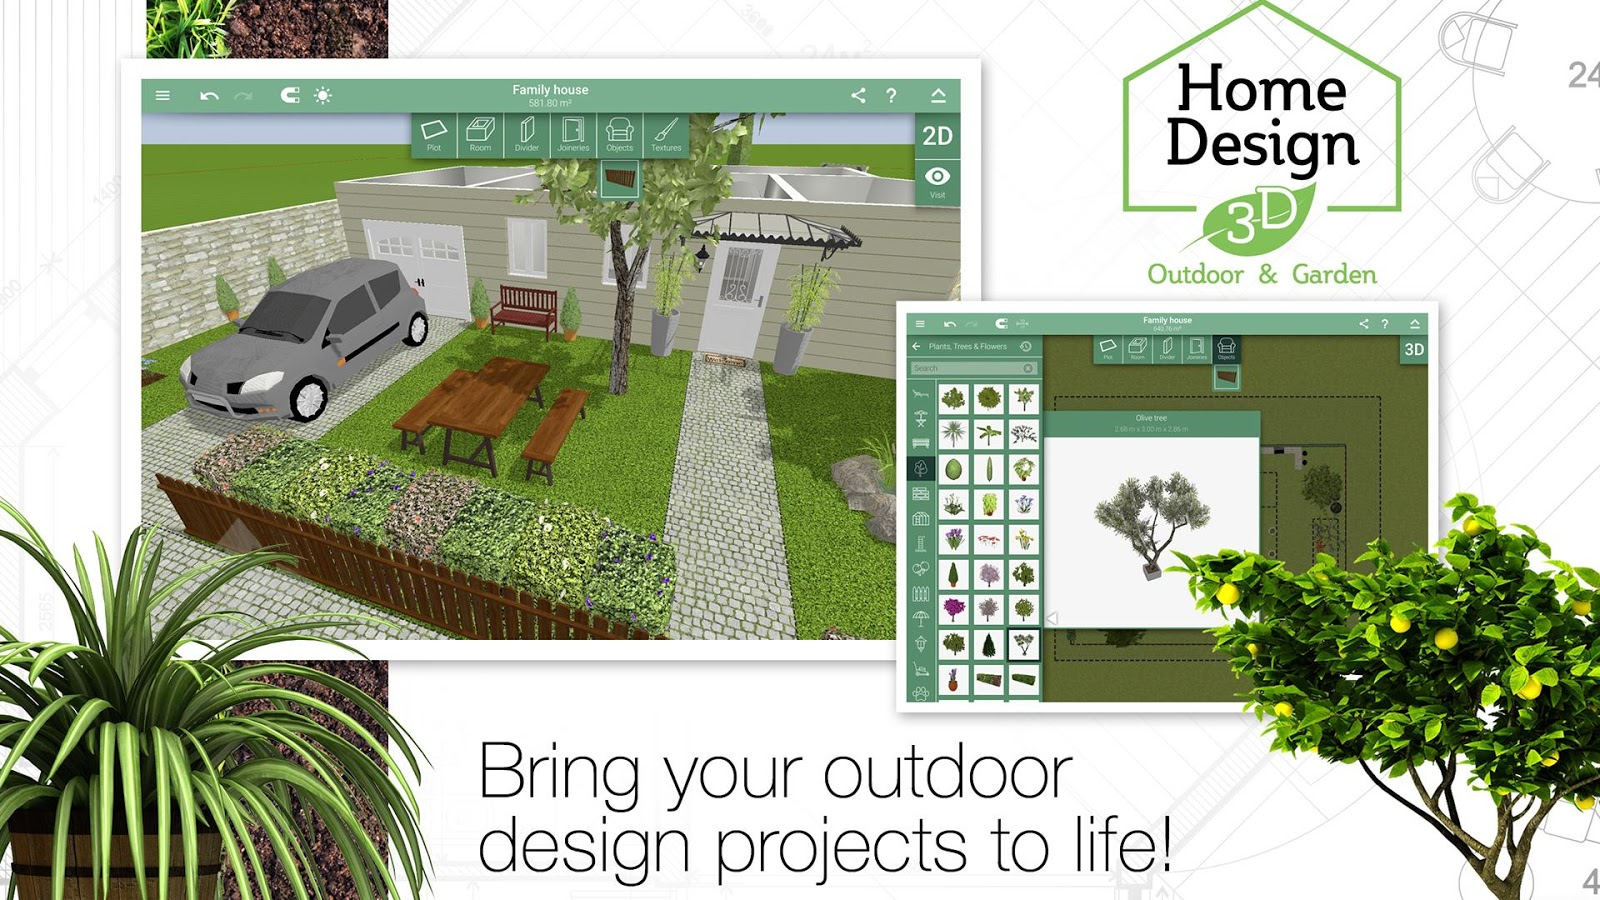 Home design 3d outdoor garden android apps on google play Home design android